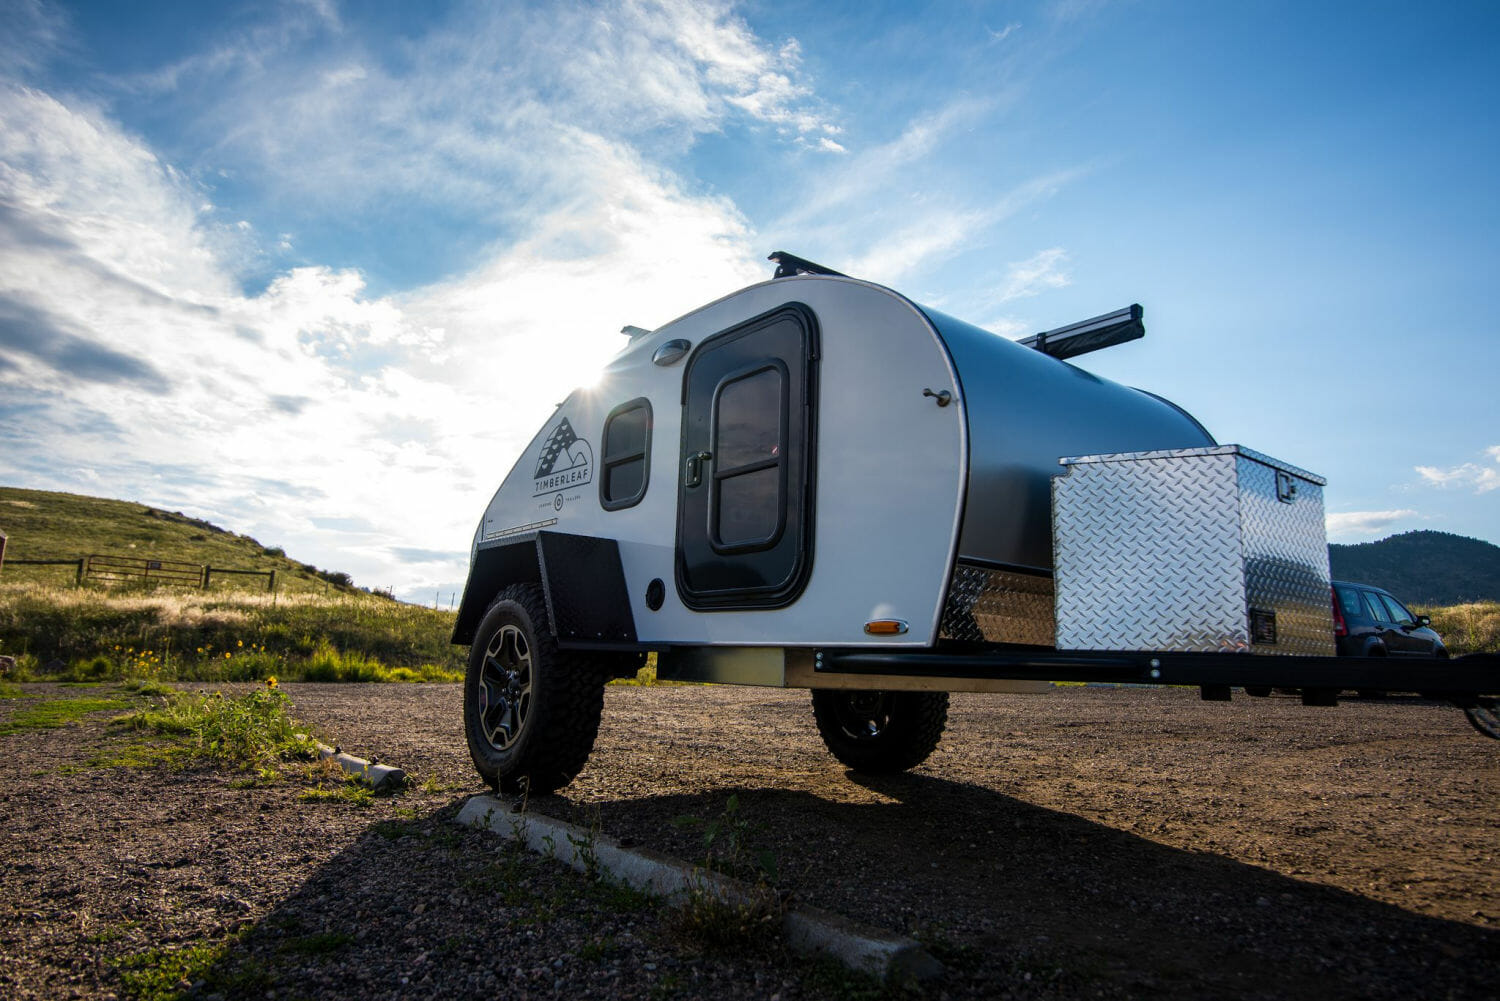 Overland Camping Trailer | Classic Teardrop Trailer by Timberleaf